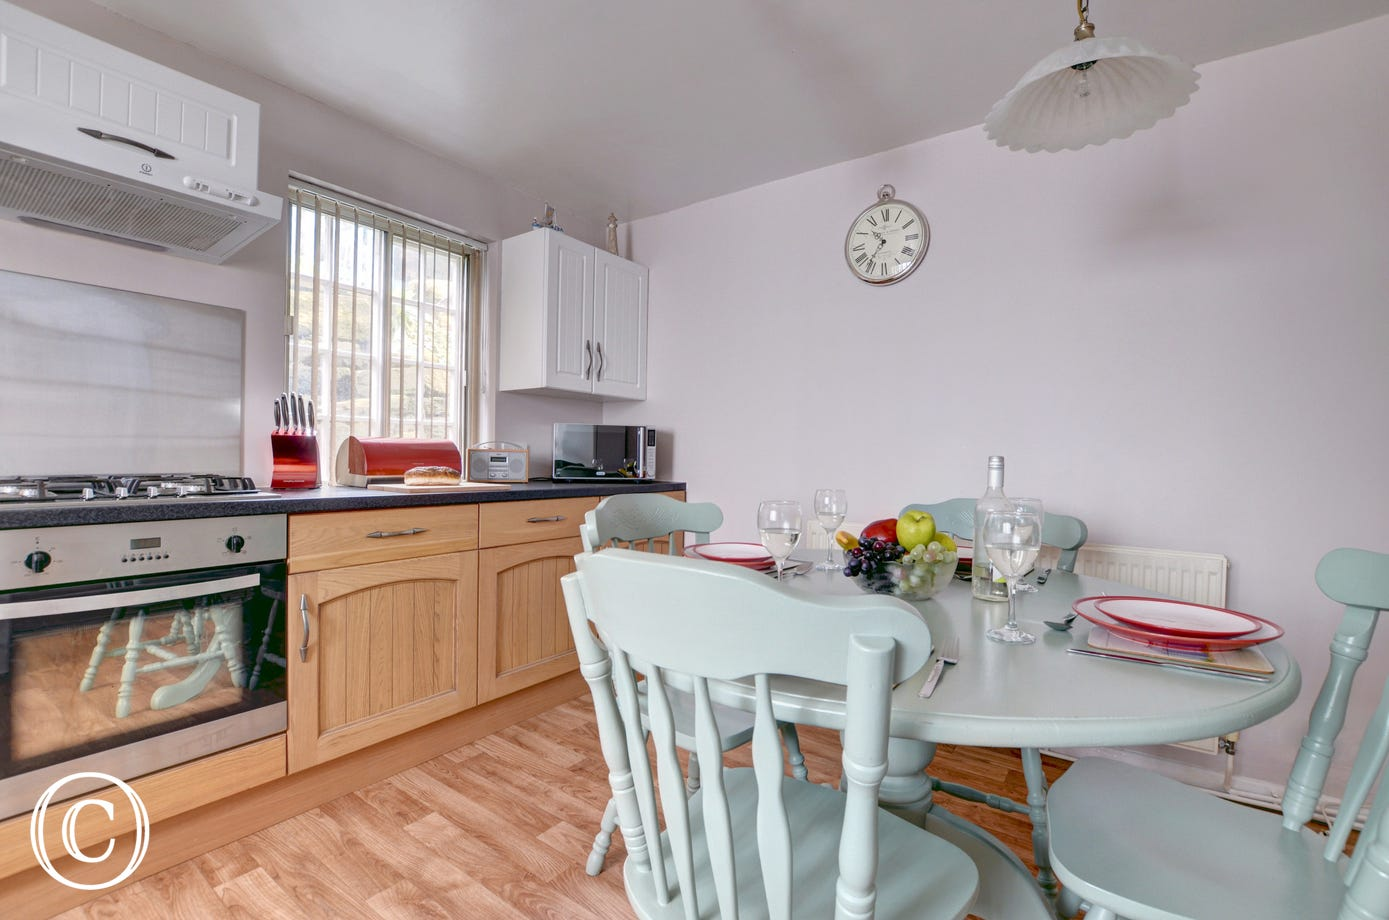 The kitchen has a dining table and chairs for four people.